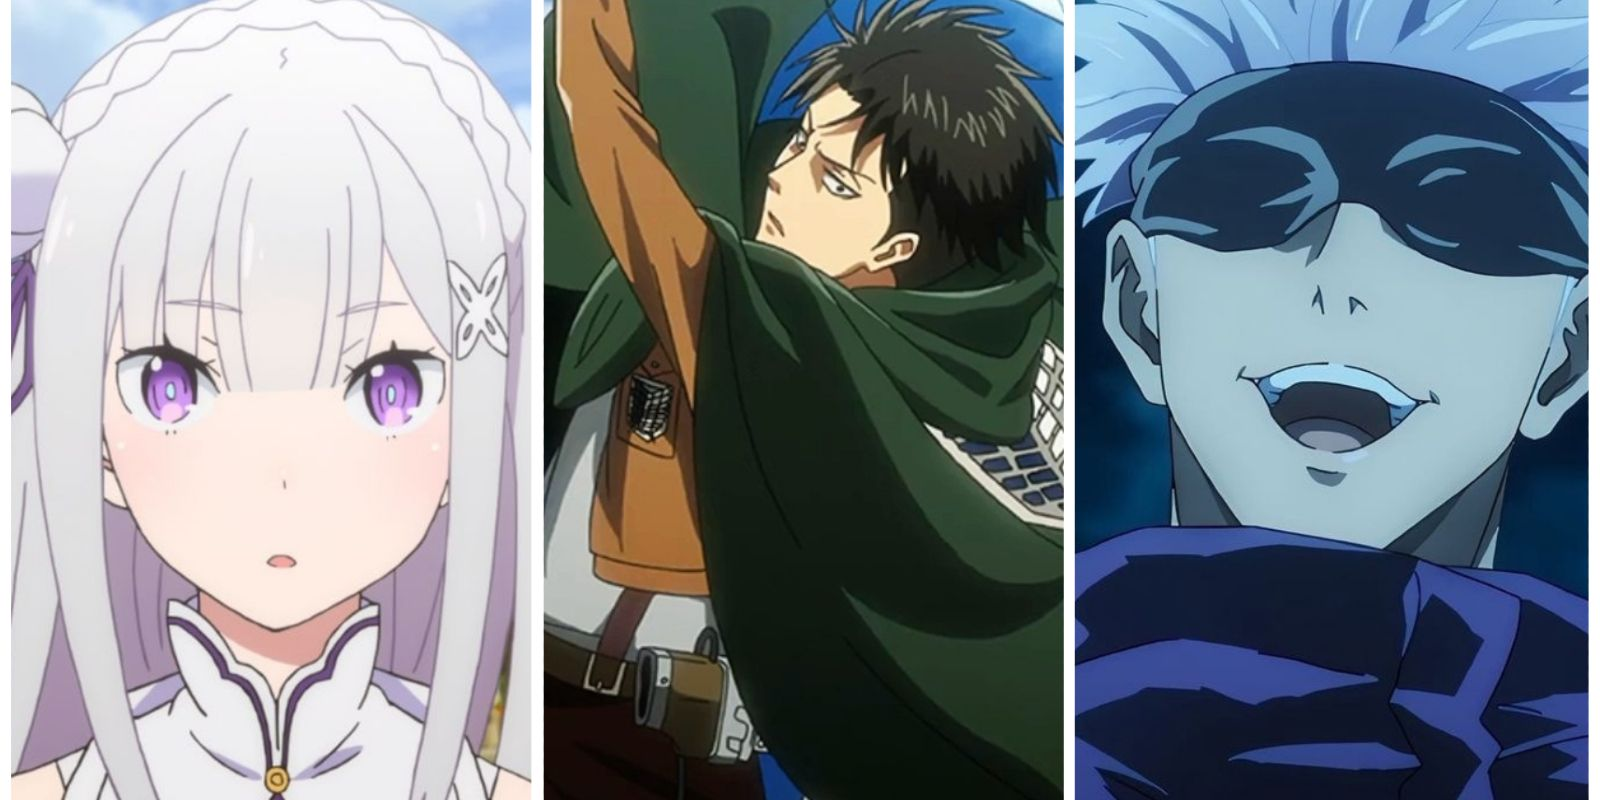 Winter 2021 10 Best Anime Characters Of The Season Ranked